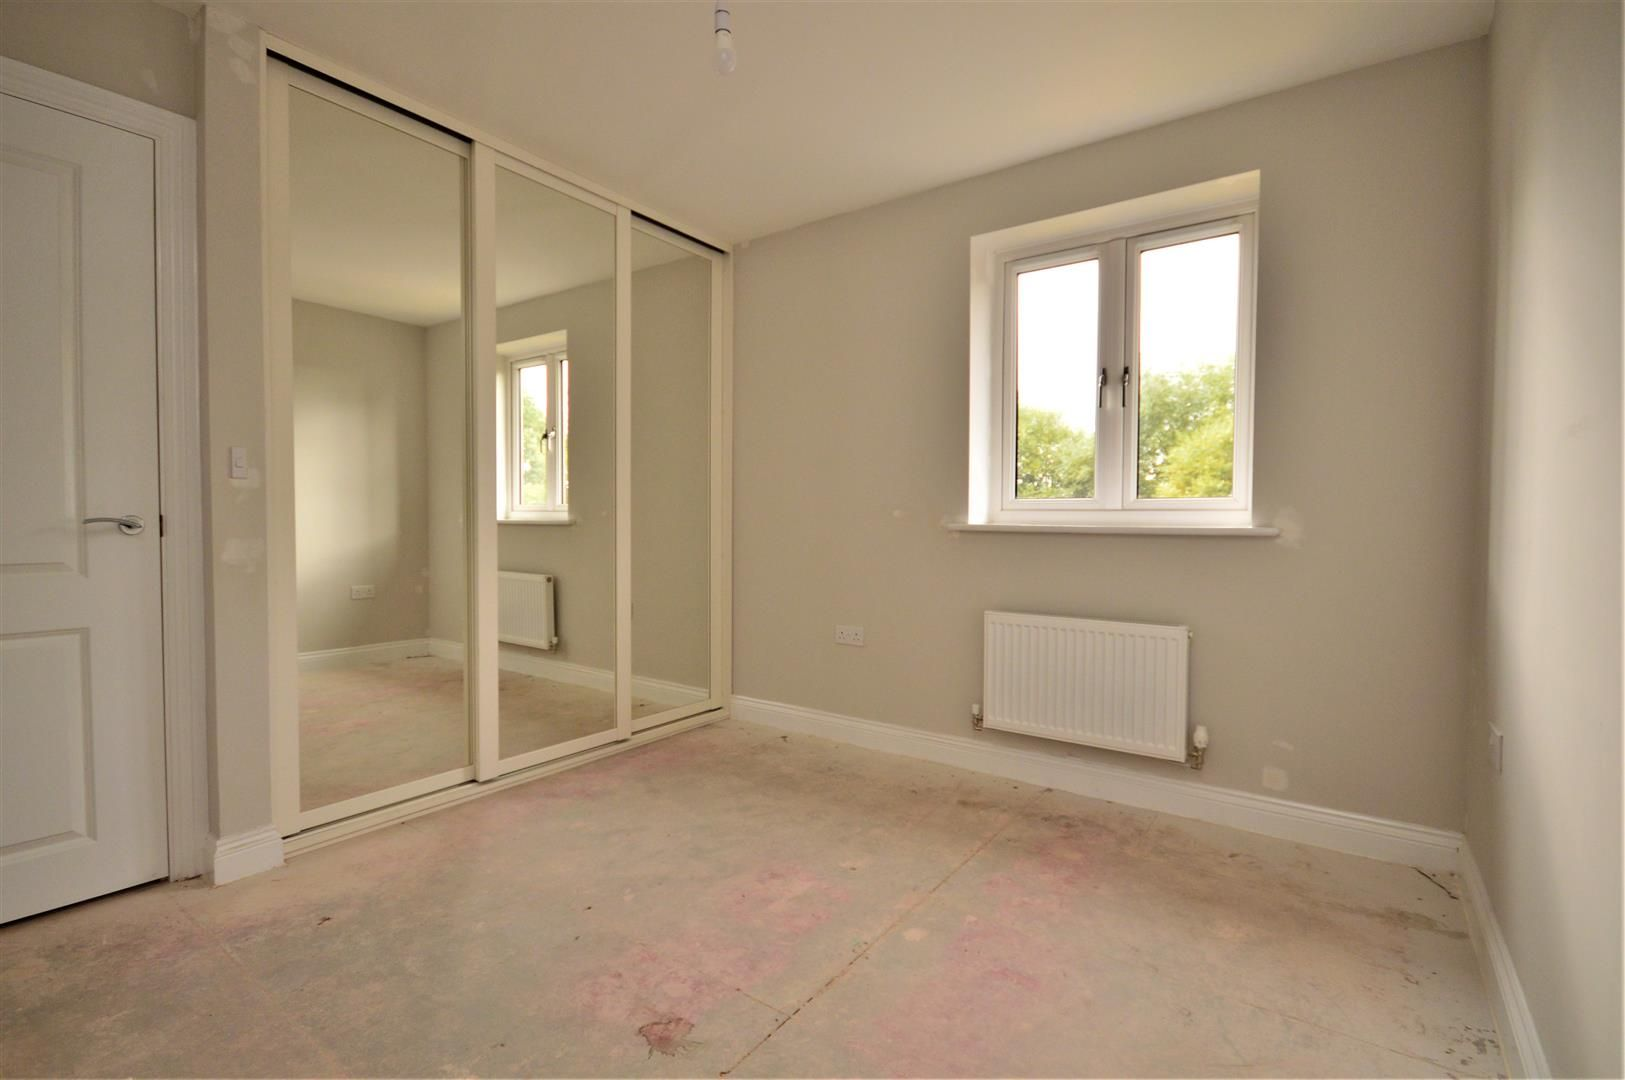 4 bed detached for sale in Kingstone 11